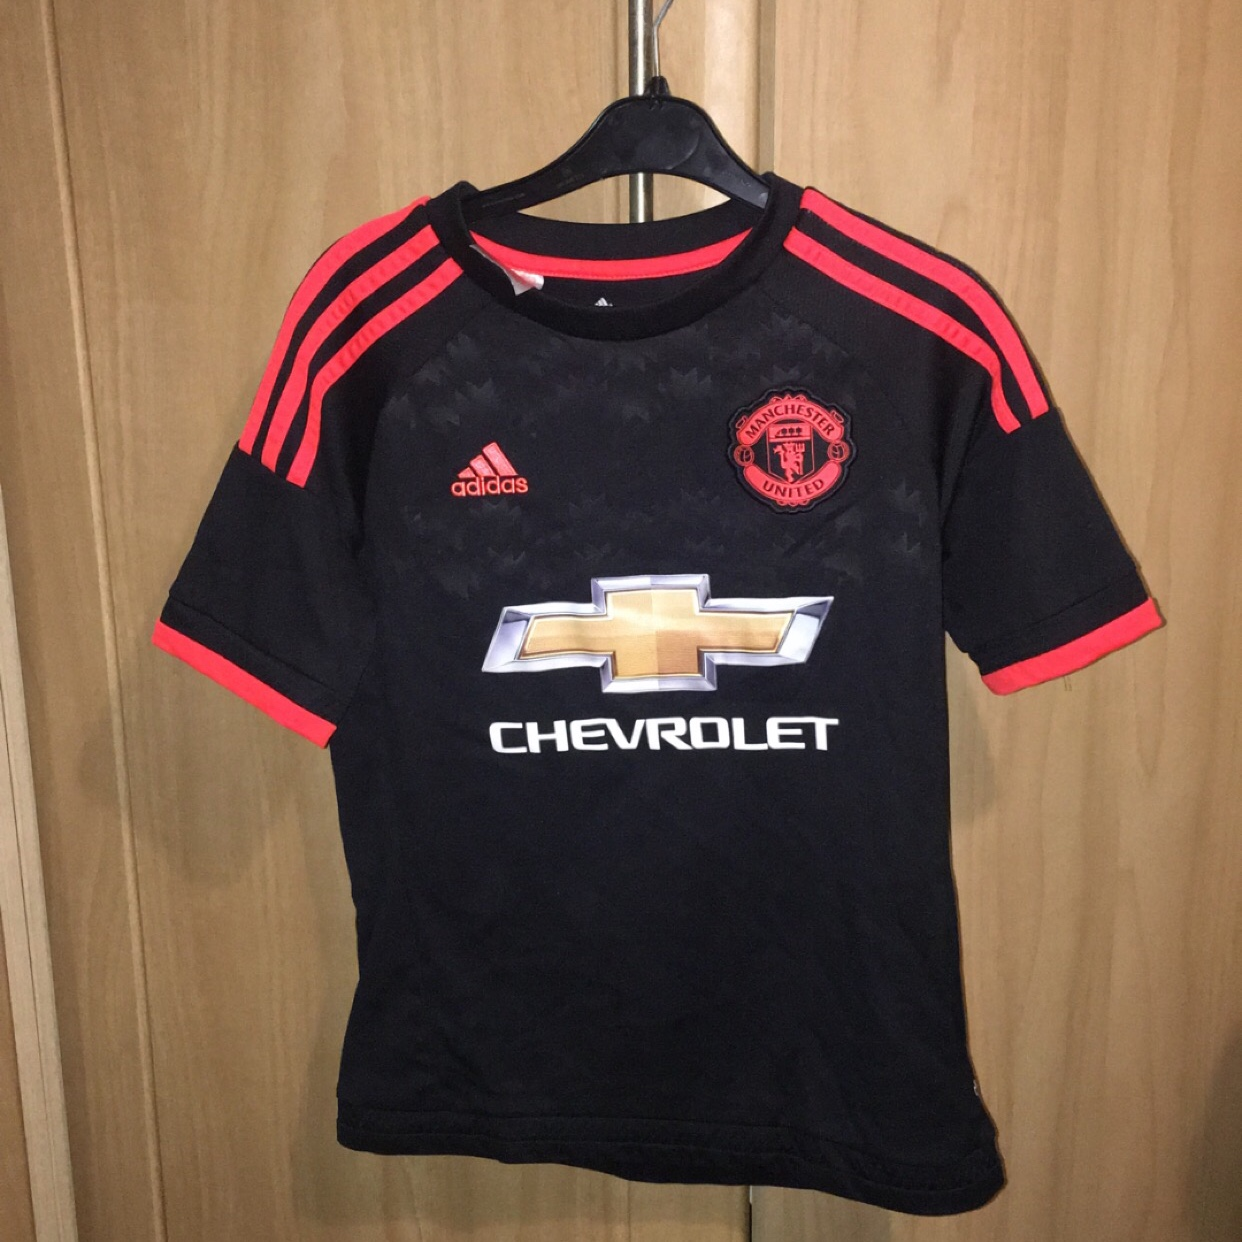 new style 14bb8 3d608 Manchester United away kit 2015-2016. Size 11-12... - Depop